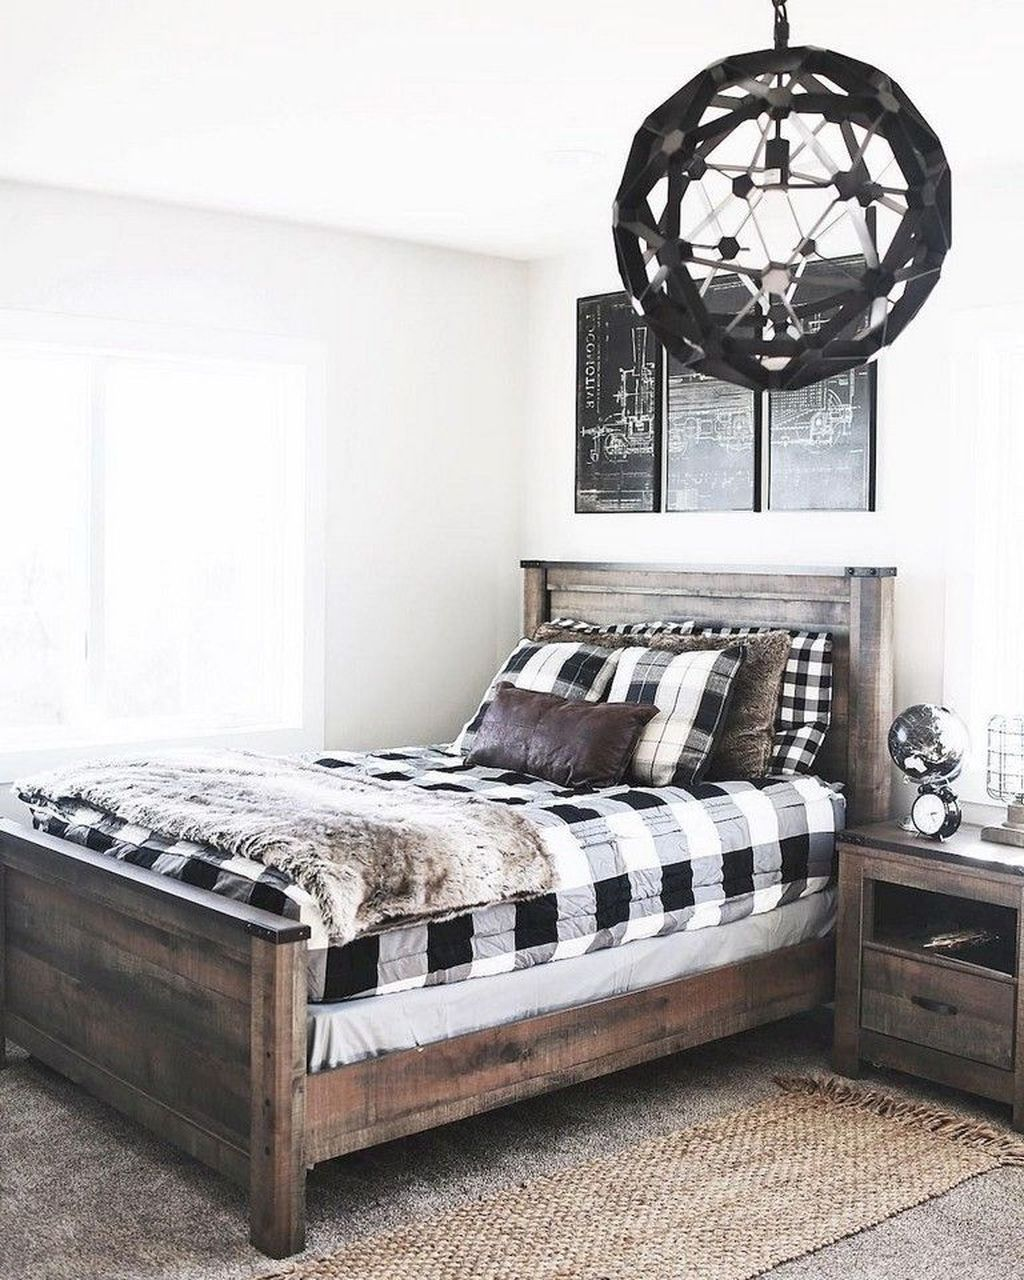 39 Beautiful Modern Farmhouse Bedroom Ideas For Master Suite #modernfarmhousebedroom